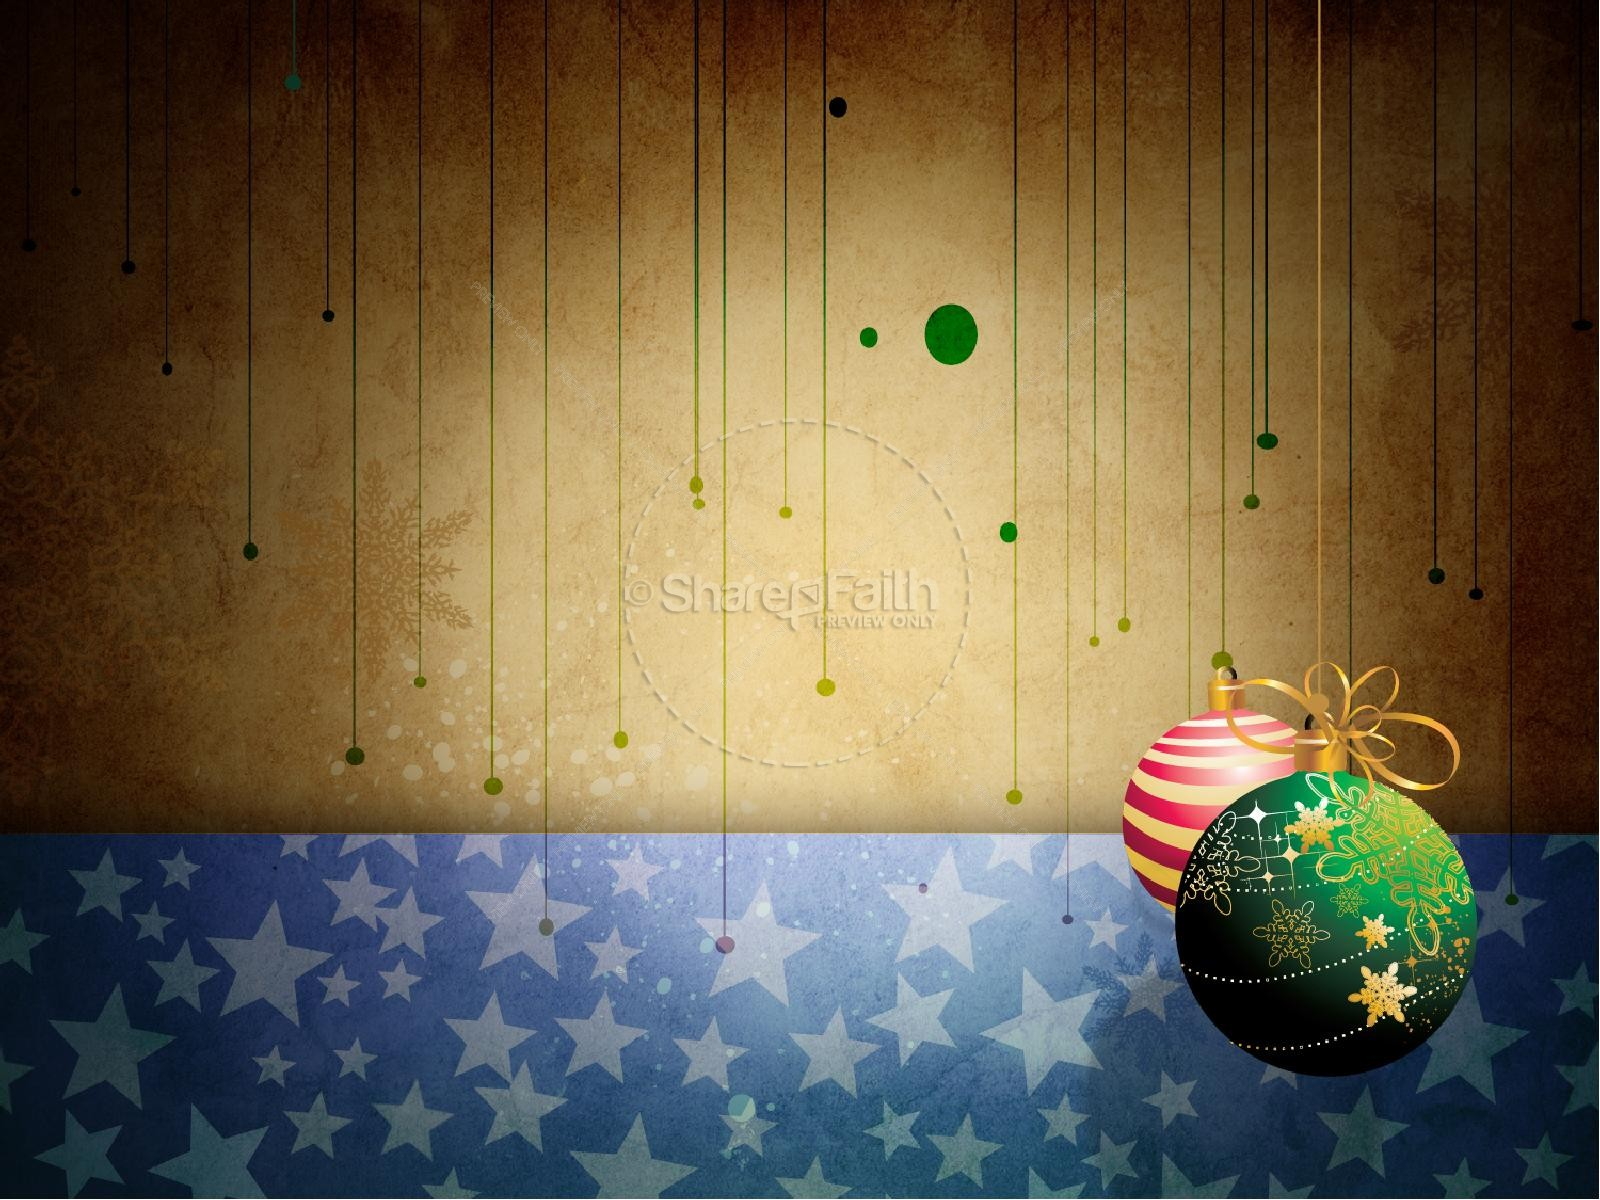 Christmas Decorations PowerPoint Template | Christmas PowerPoints